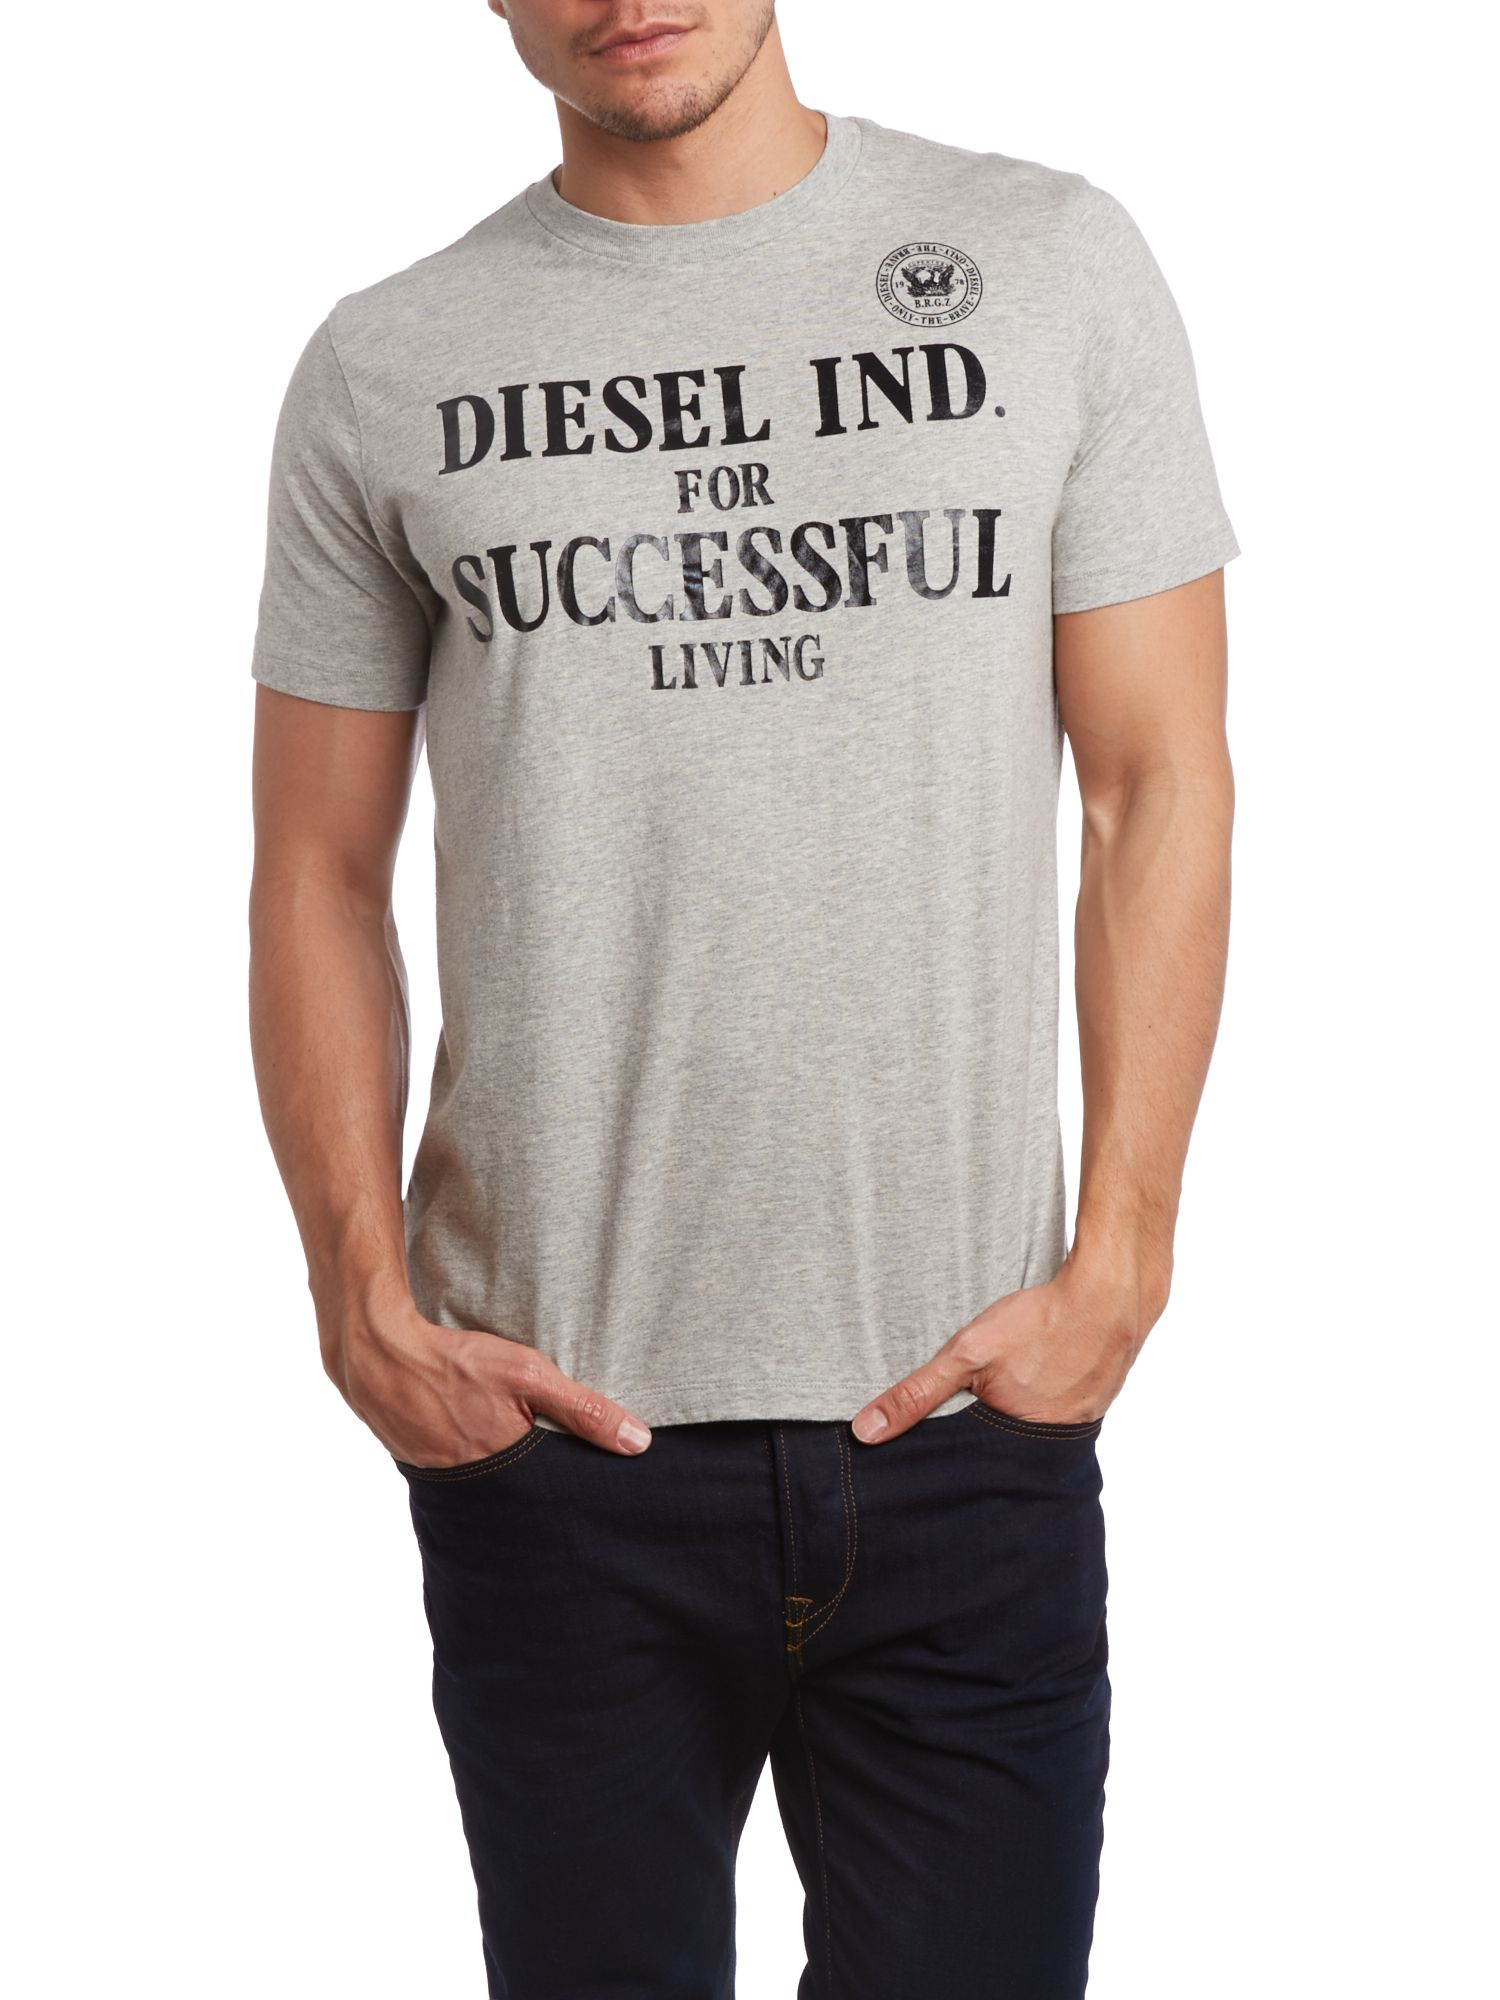 T-difsa diesel success t shirt